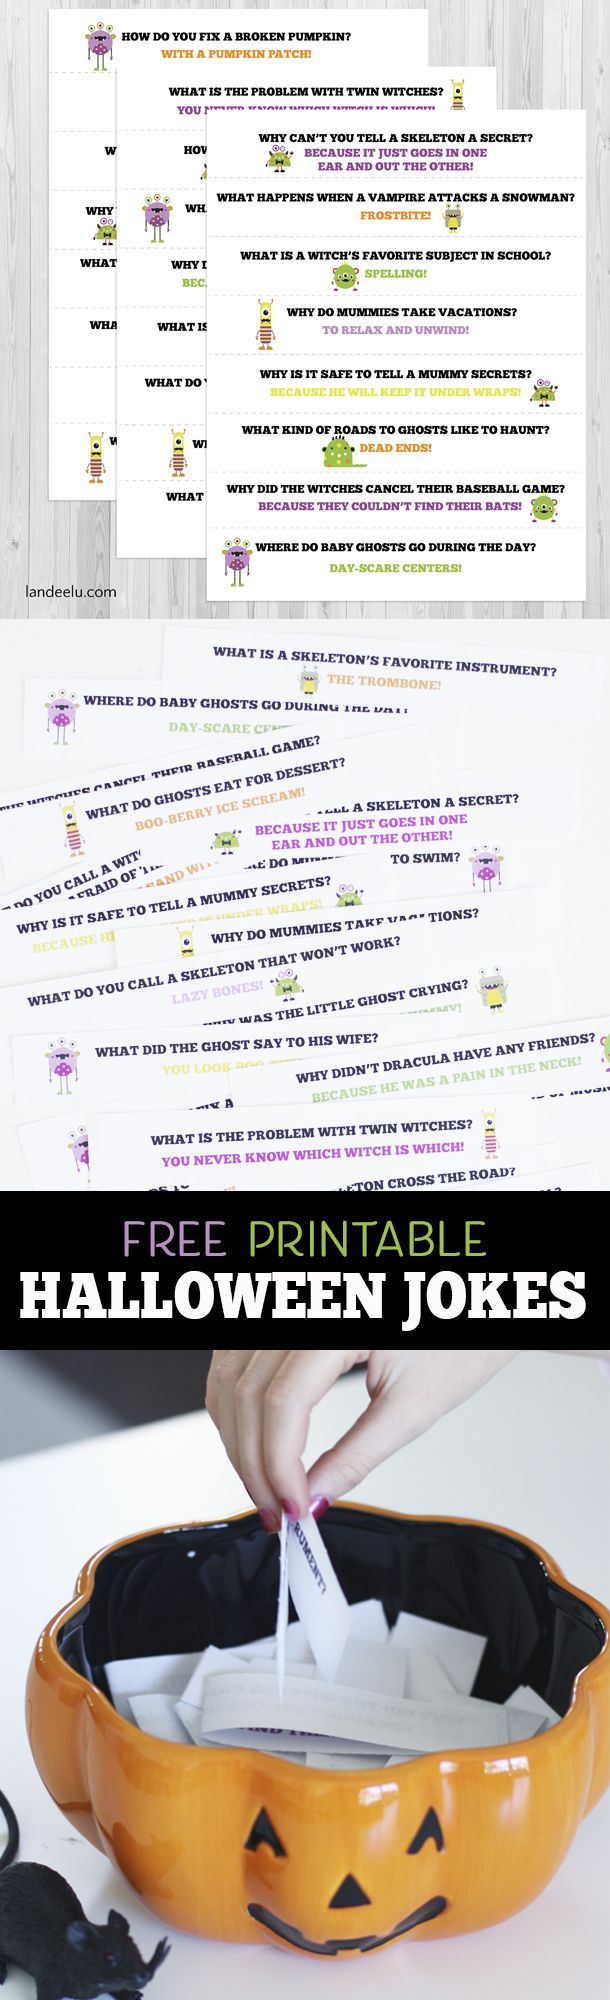 These punny Halloween jokes will be a hit all through October! Stick them in lun...